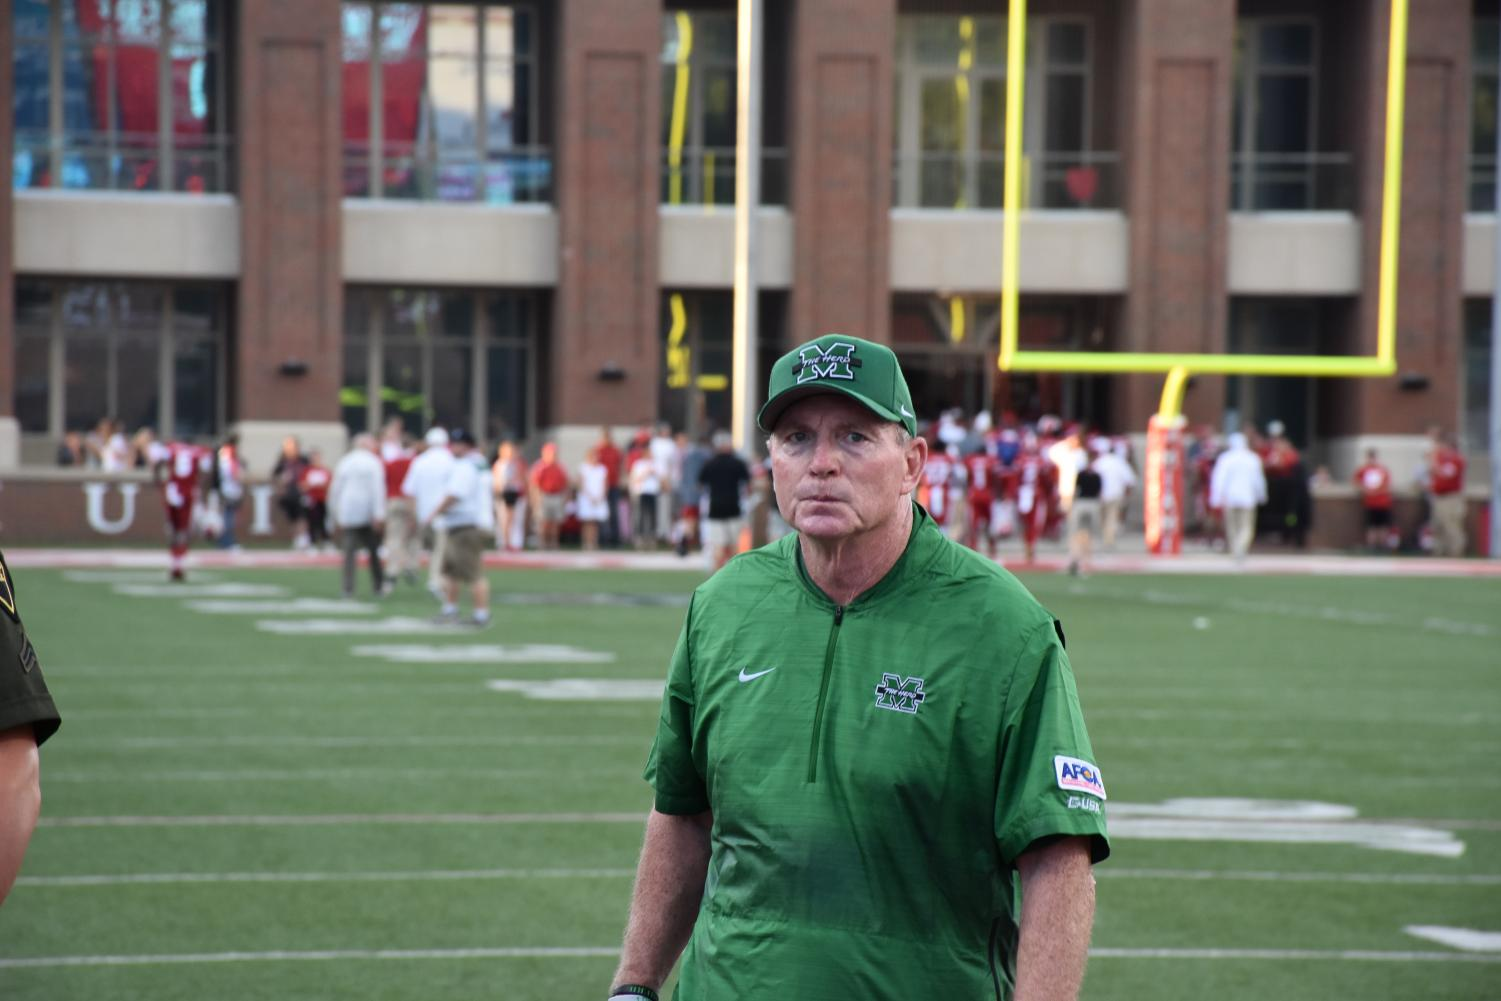 Marshall head football coach Doc Holliday leaves the field following warmups during the Thundering Herd's 2018 season opener at Miami (Ohio) on Sept. 1, 2018. Holliday announced three additions to the coaching staff on Monday.